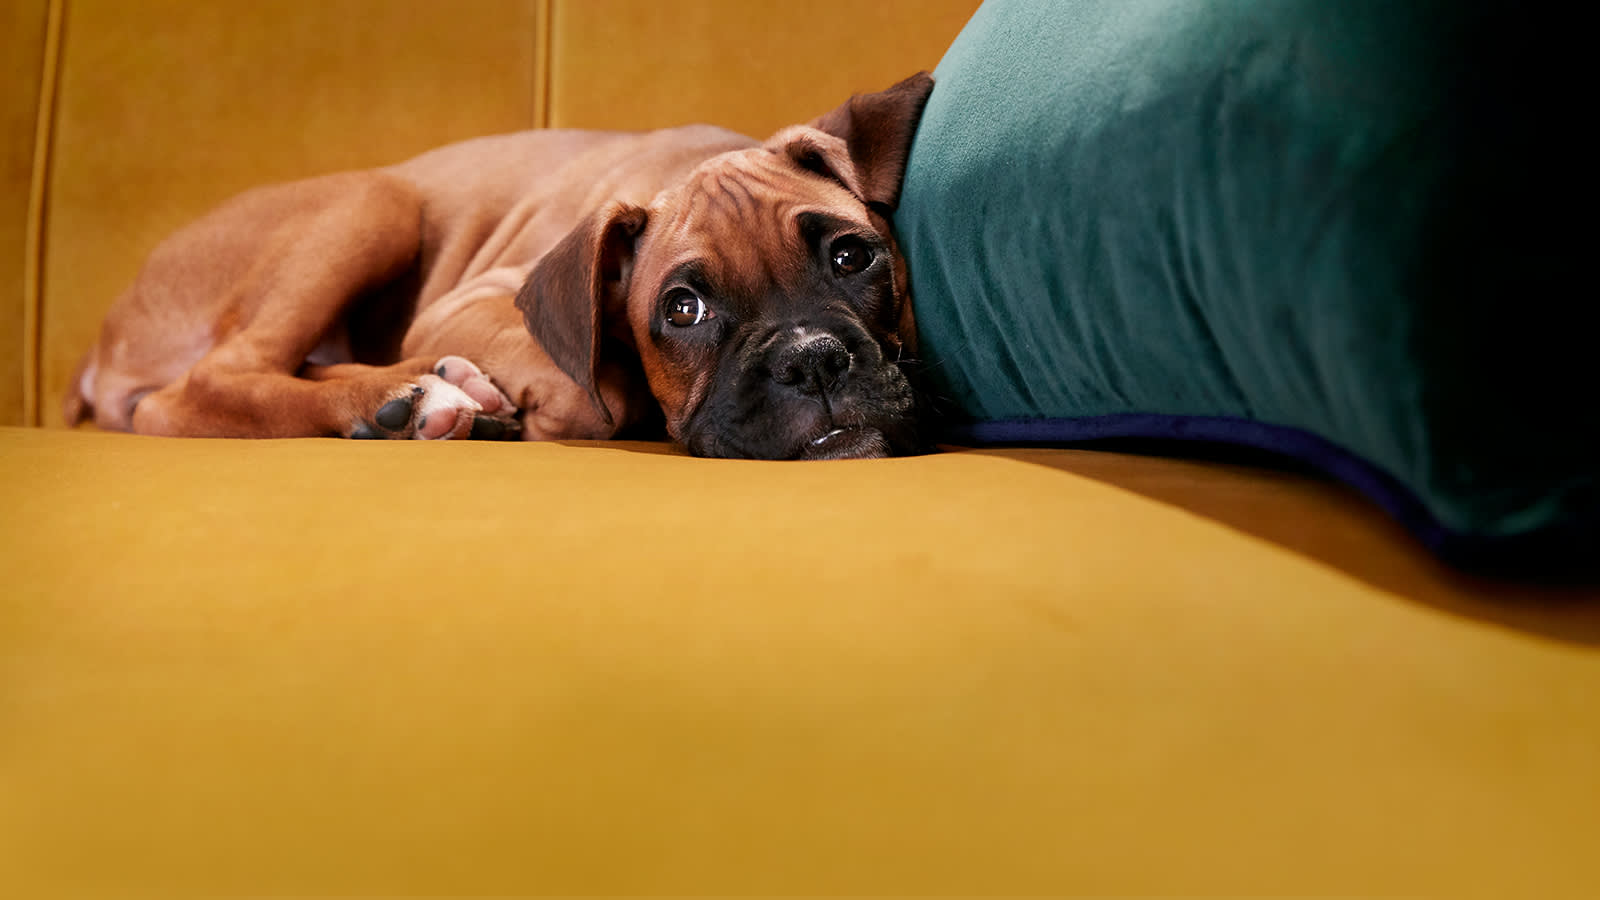 Puppy relaxing on a yellow Perle fabric sofa